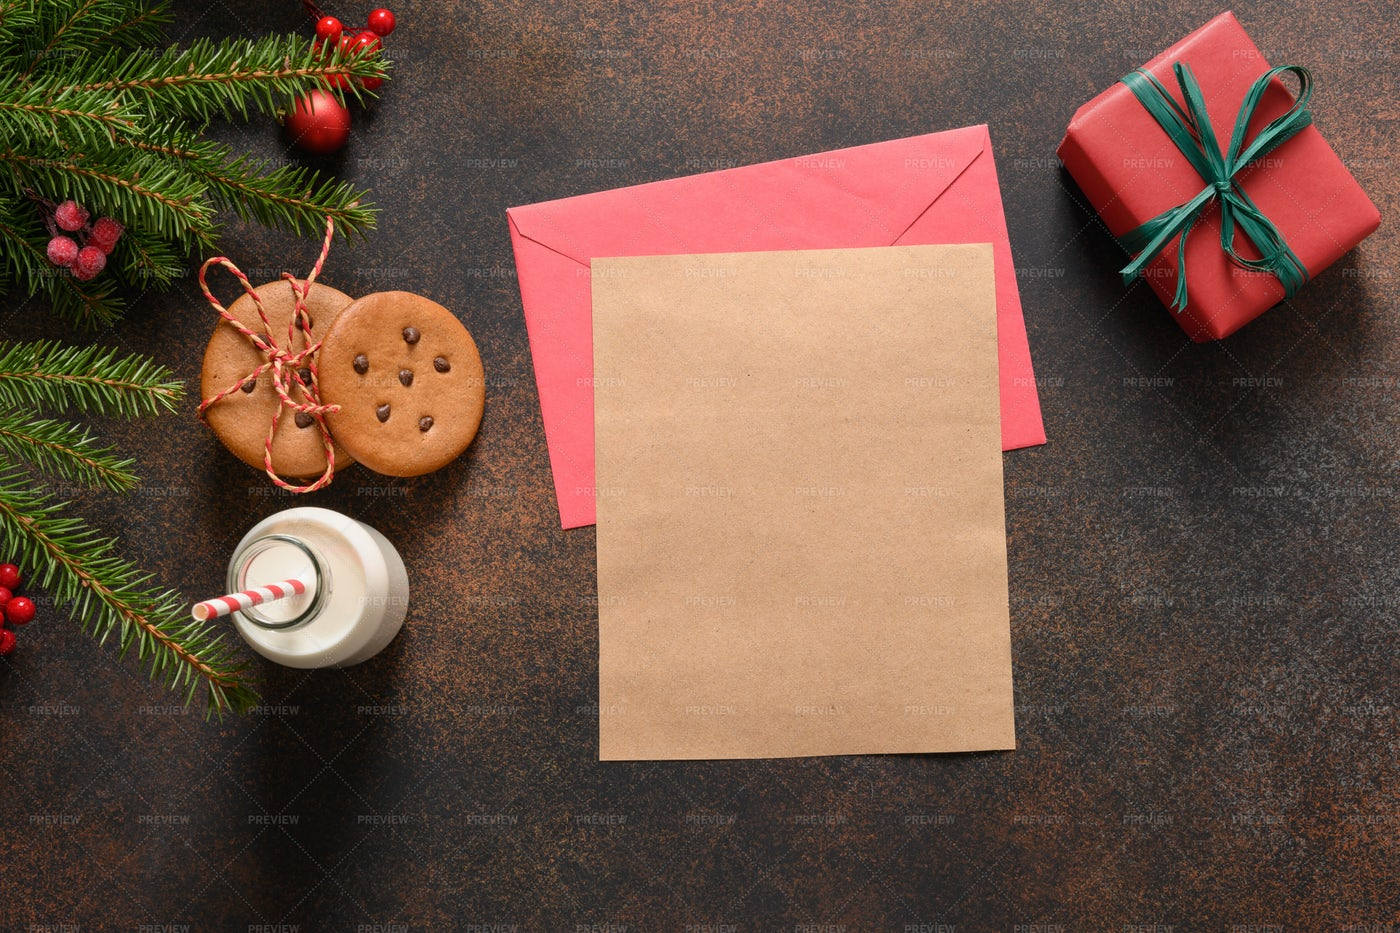 Cookies And Santa For Letter: Stock Photos